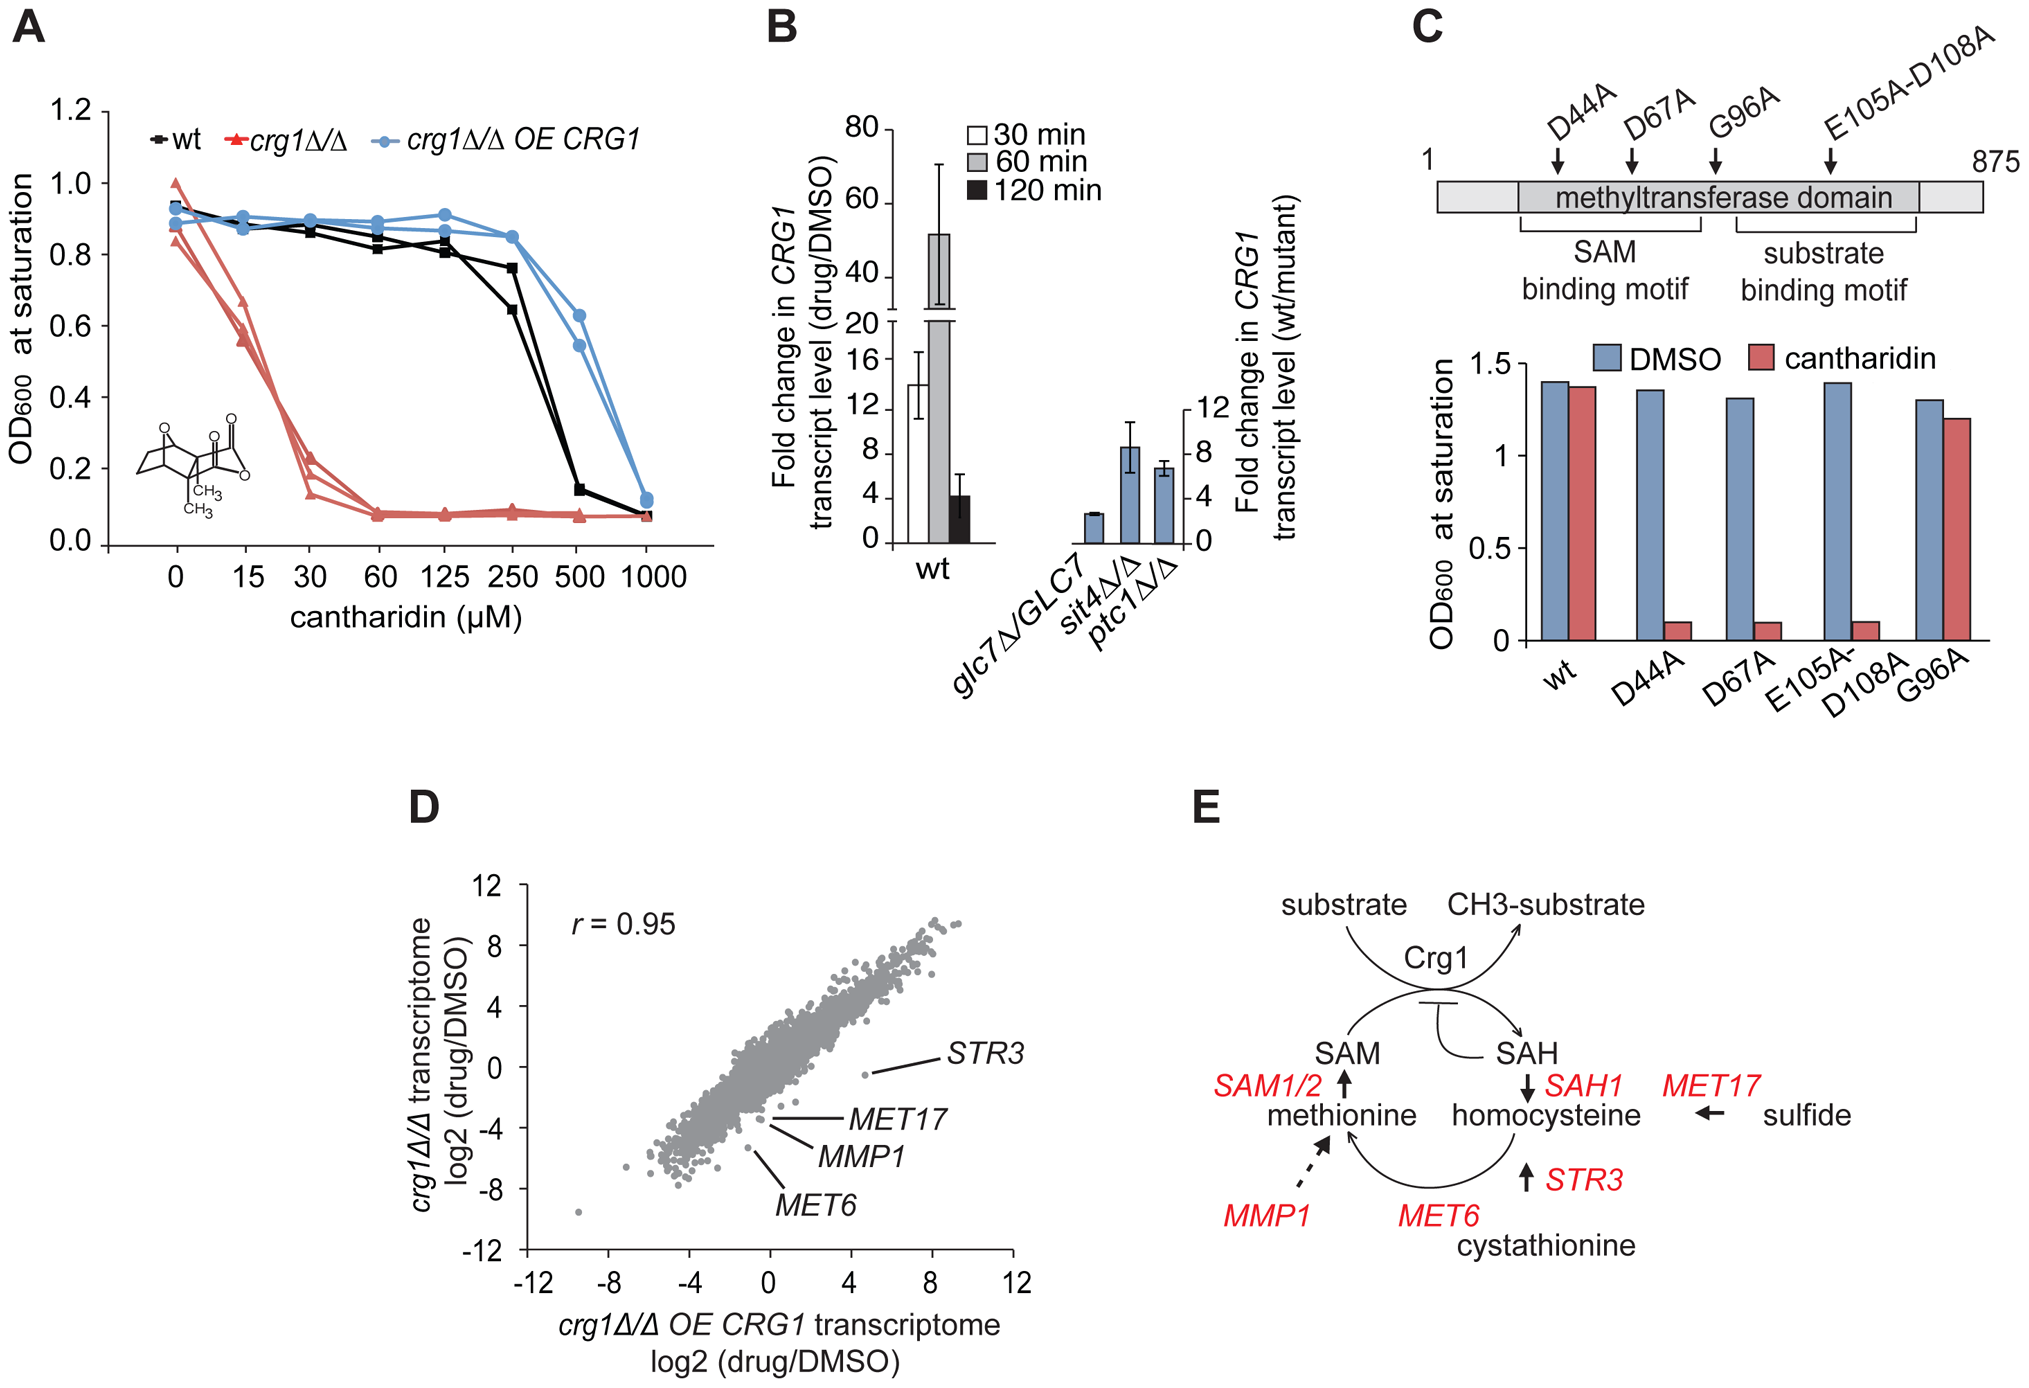 Functional SAM-dependent methyltransferase Crg1 is required for cantharidin response.